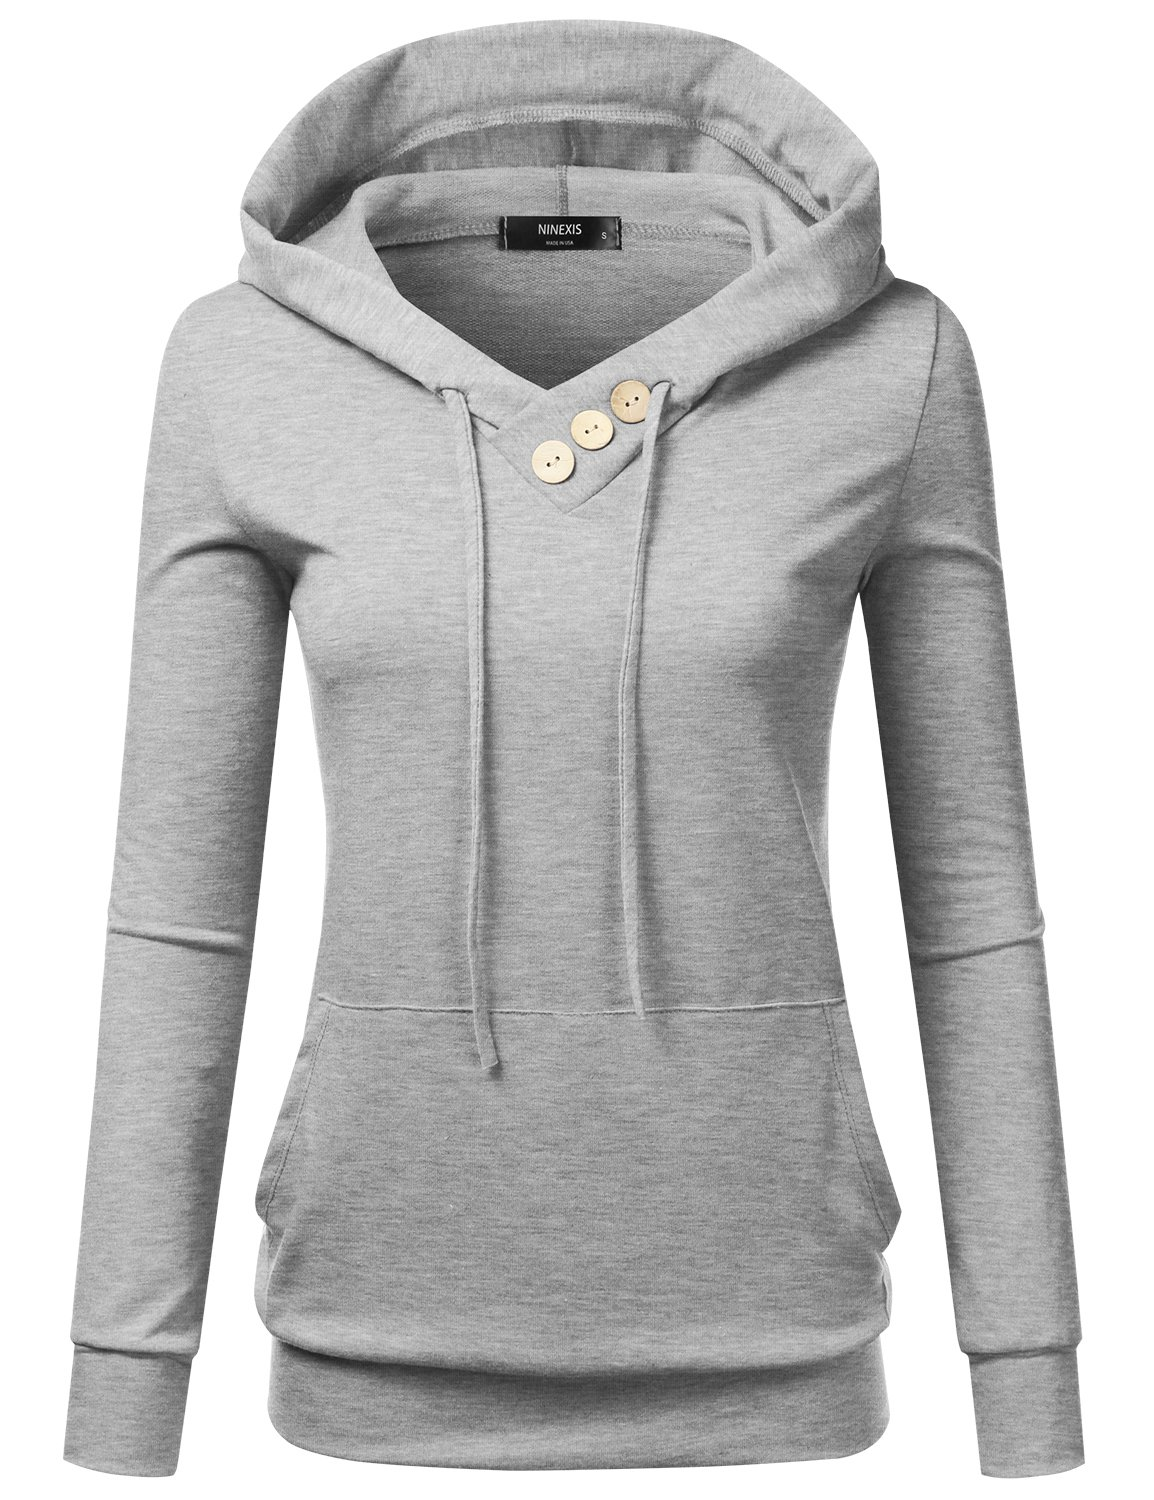 NINEXIS Women's Long Sleeve Button V-Neck Sweatshirts Pullover Hoodie HGREY 2XL